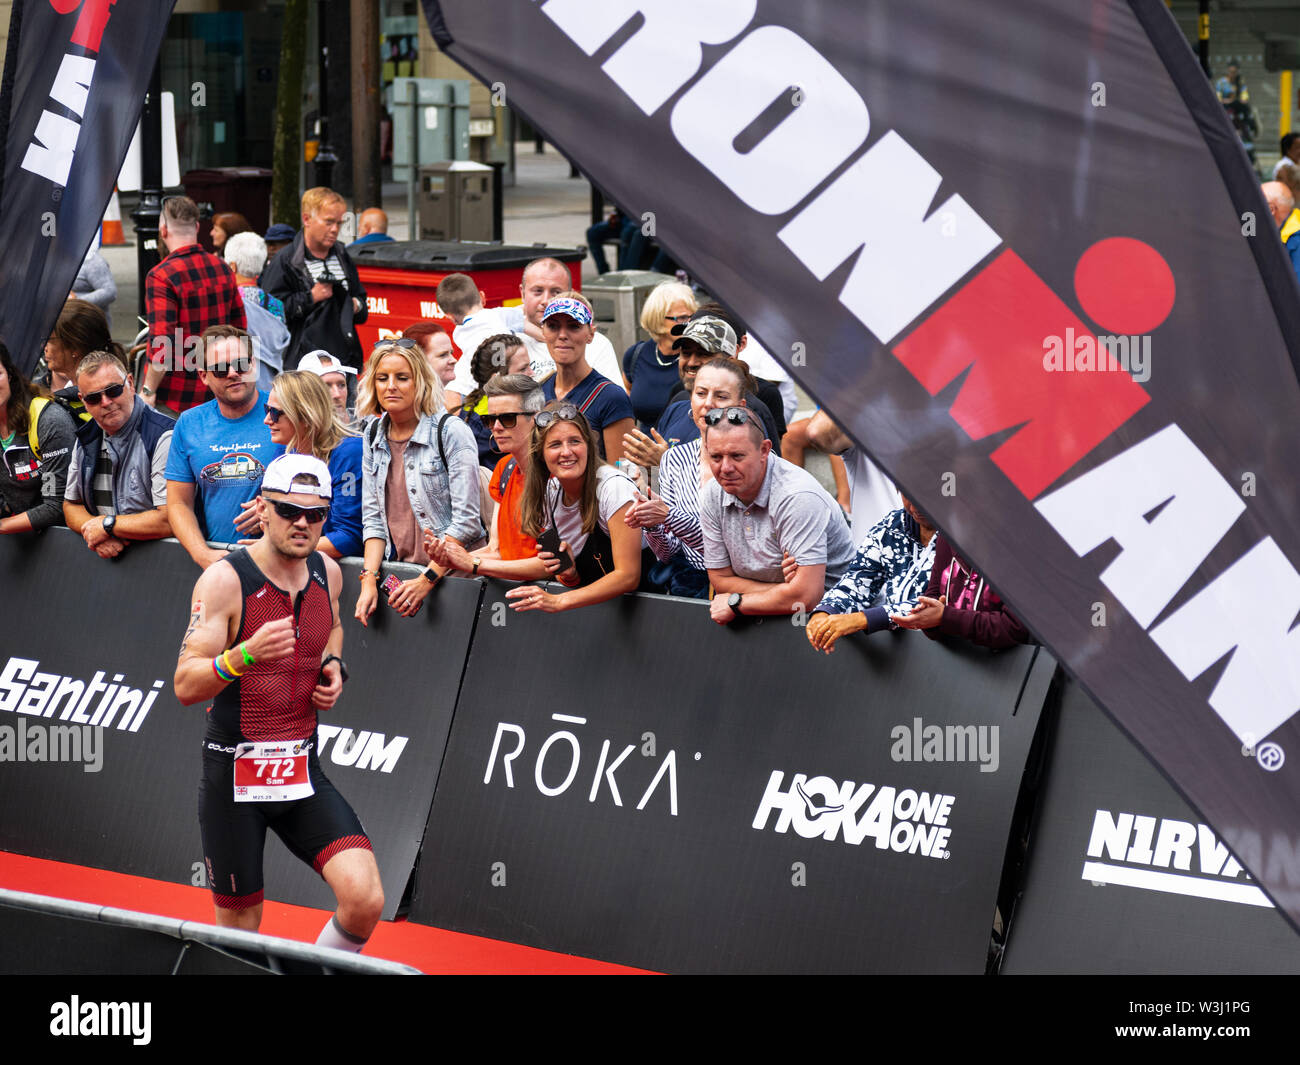 Bolton, United Kingdom - 14 July 2019: Sam Tyrer pumps his fist as he runs down the finishing straight at the Bolton Ironman. - Stock Image